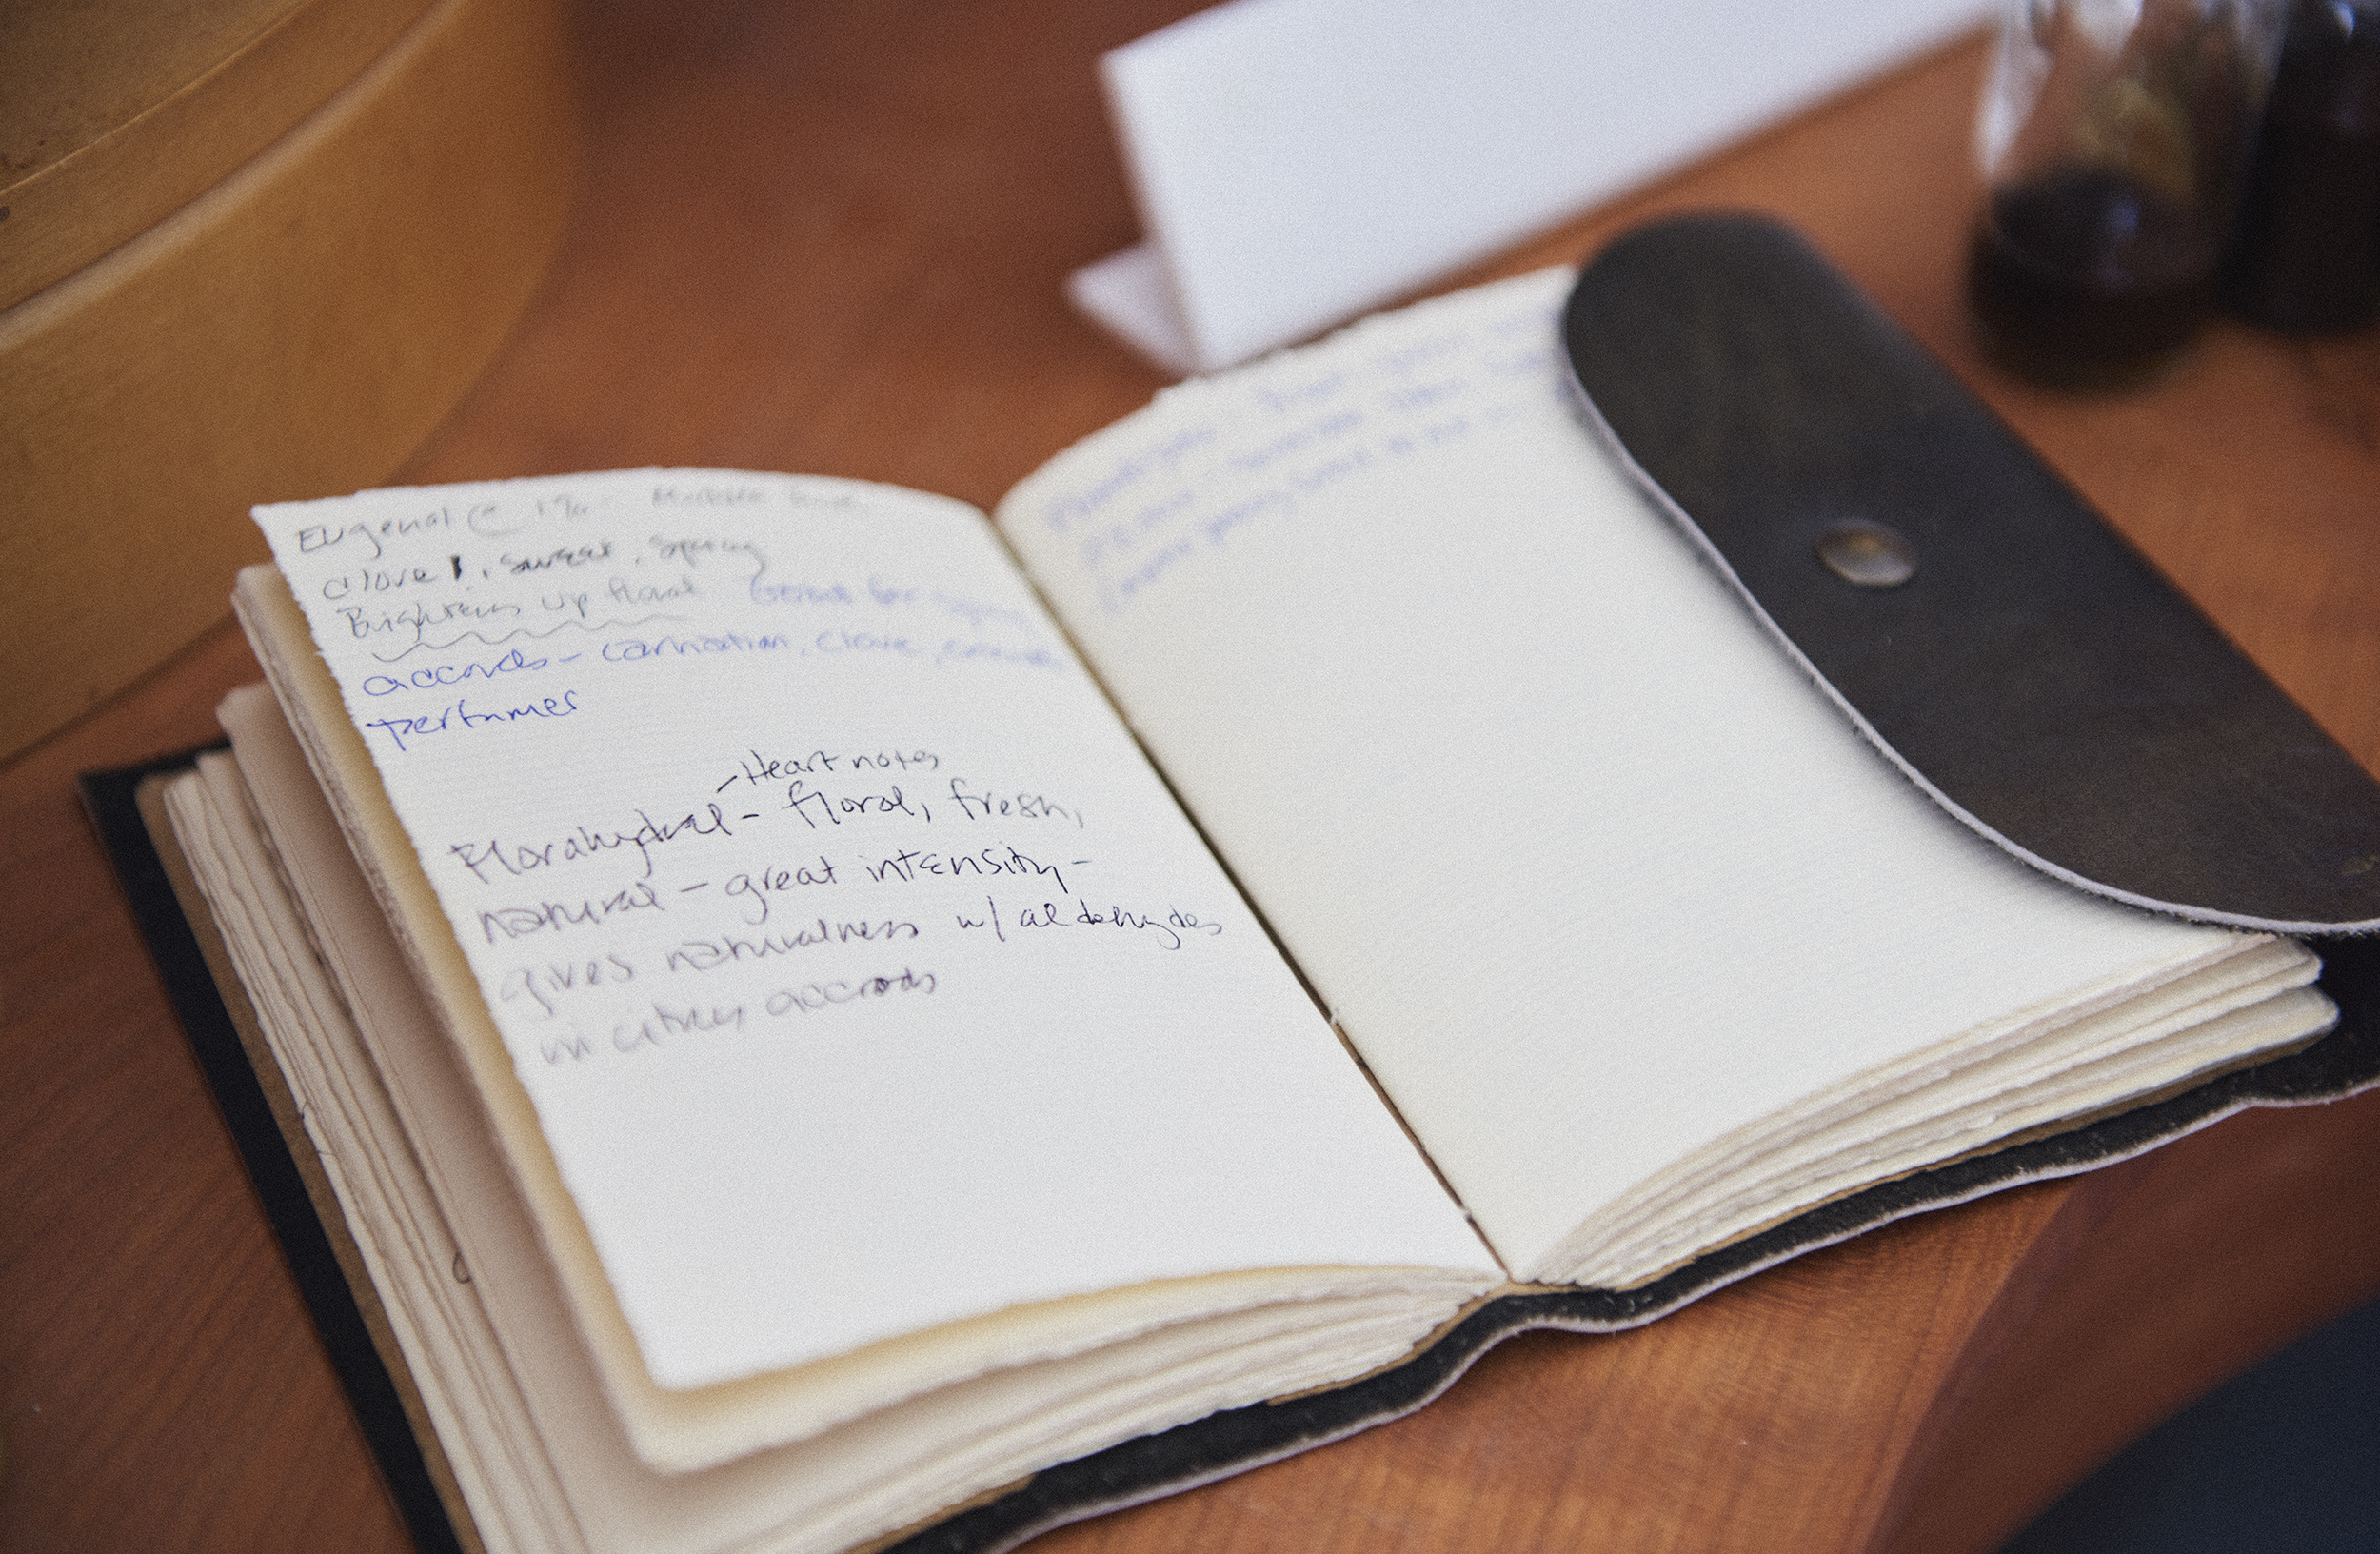 Copy of Notebook on desk with perfume notes